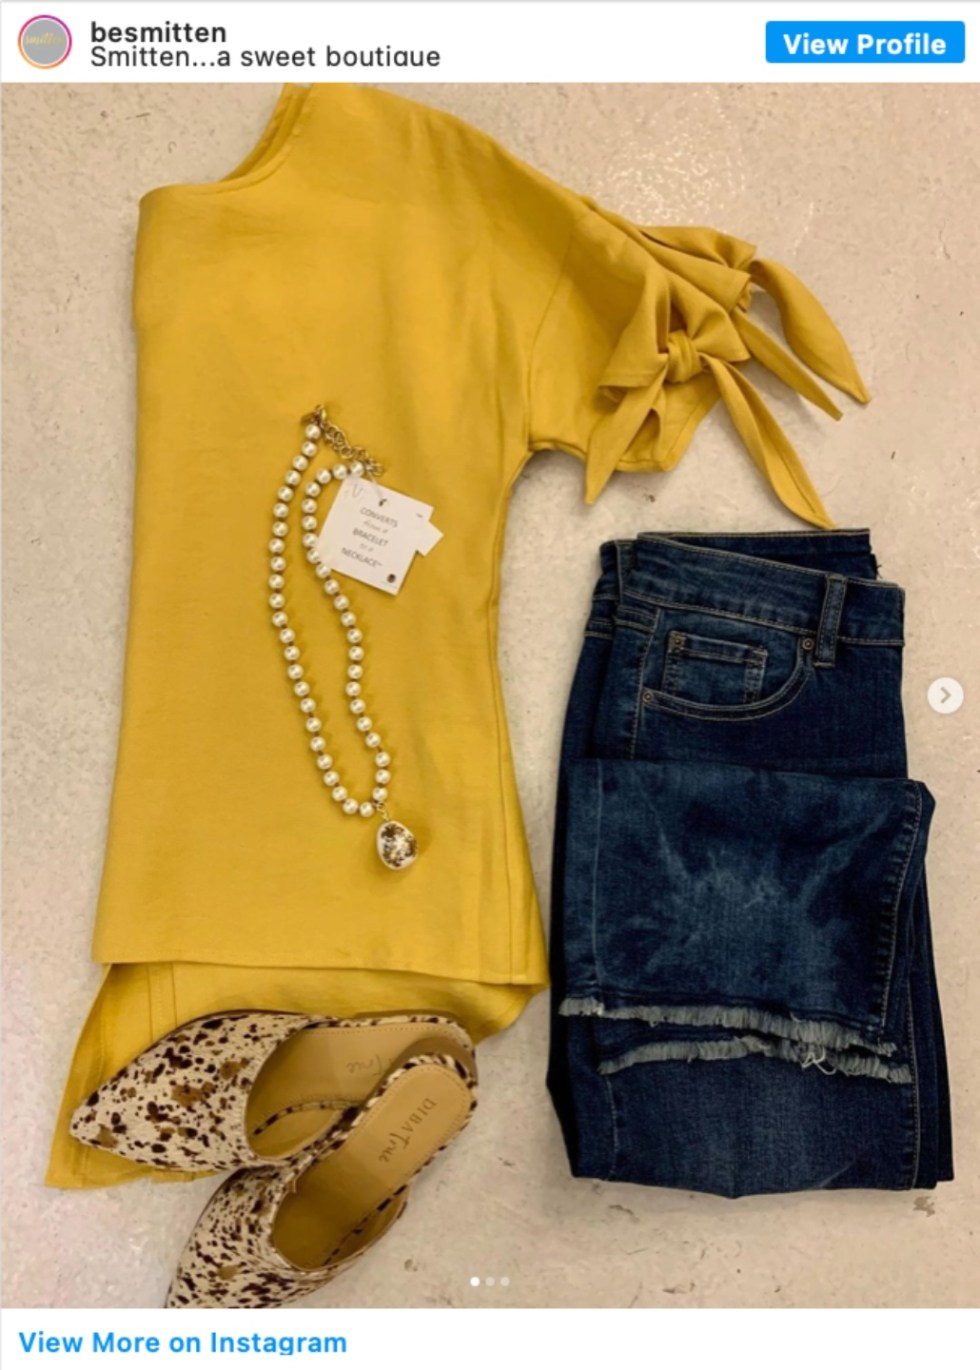 Durham Shopping: Top 11 Best Fashion Boutiques to visit After a Year of Quarantine - I'm Fixin' To - @imfixintoblog | Durham Shopping by popular NC lifestyle blog, I'm Fixin' To: image of a mustard yellow tie sleeve top, jeans, mules and a pearl necklace.